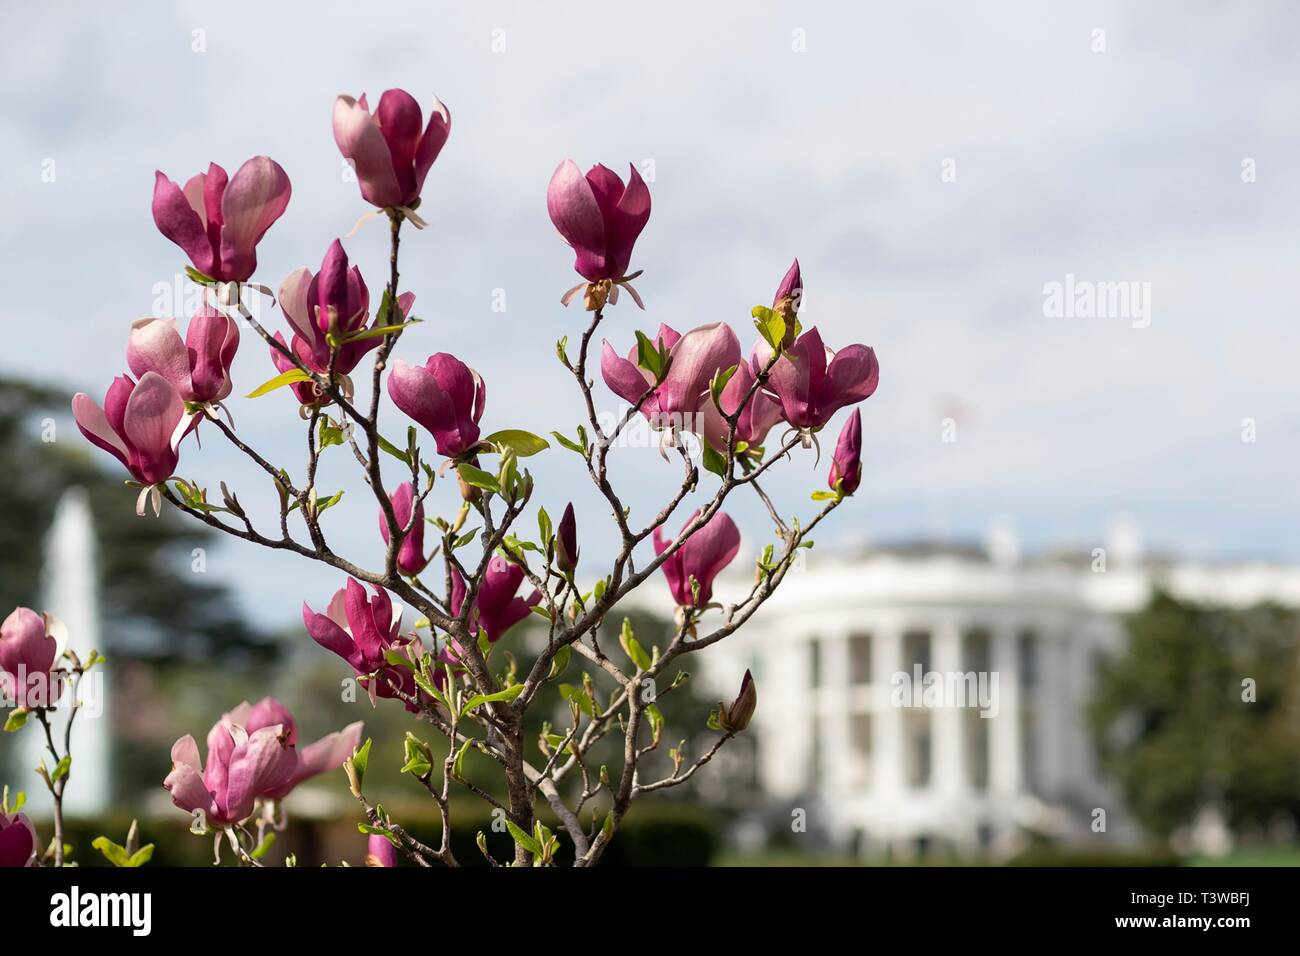 Magnolia Tree Blossoms During Spring Along The South Lawn Of The